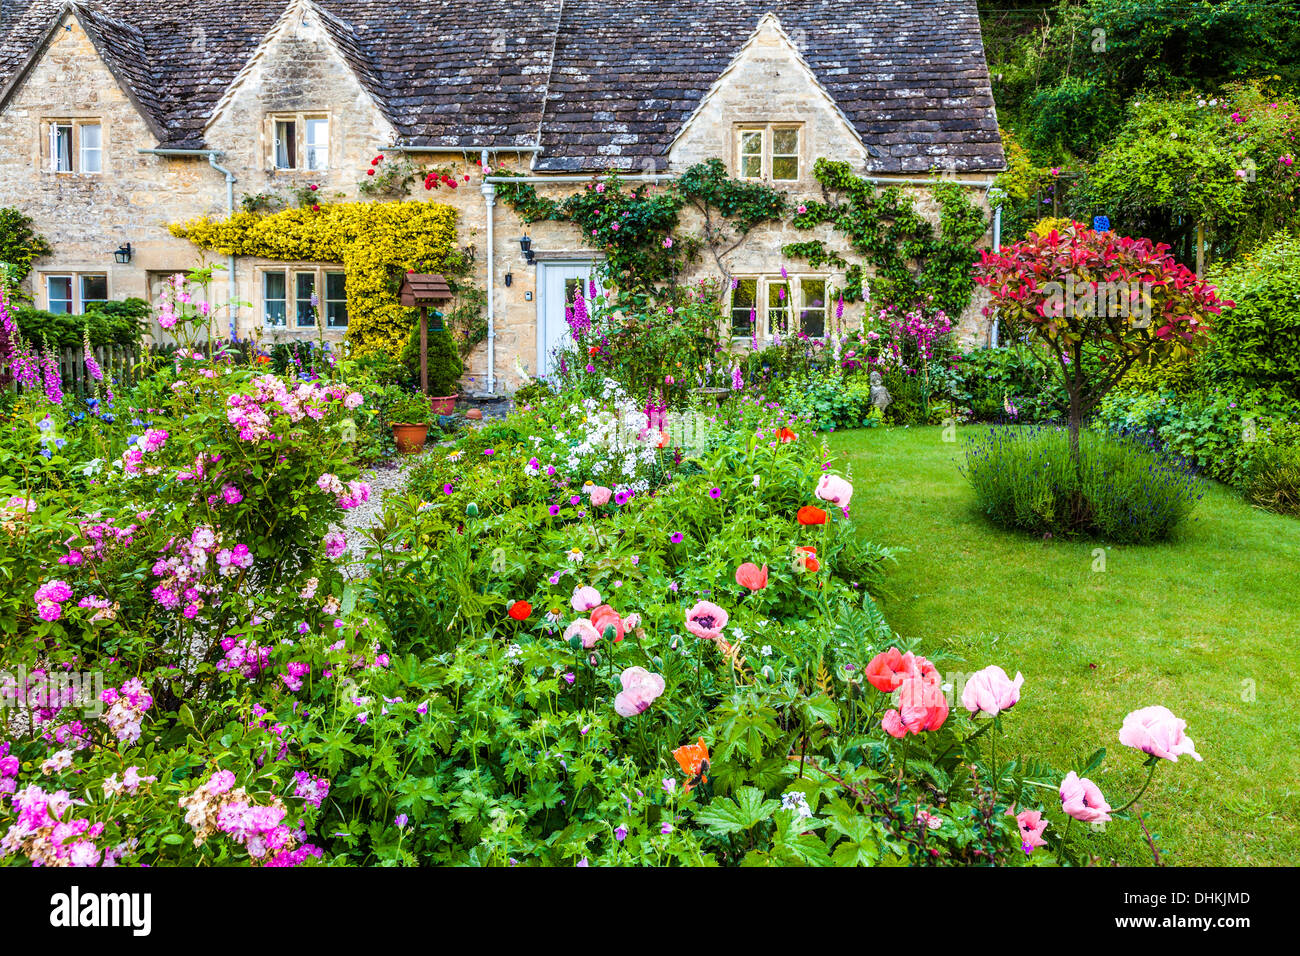 Bibury village photos bibury village images alamy for Jardin de cottage anglais